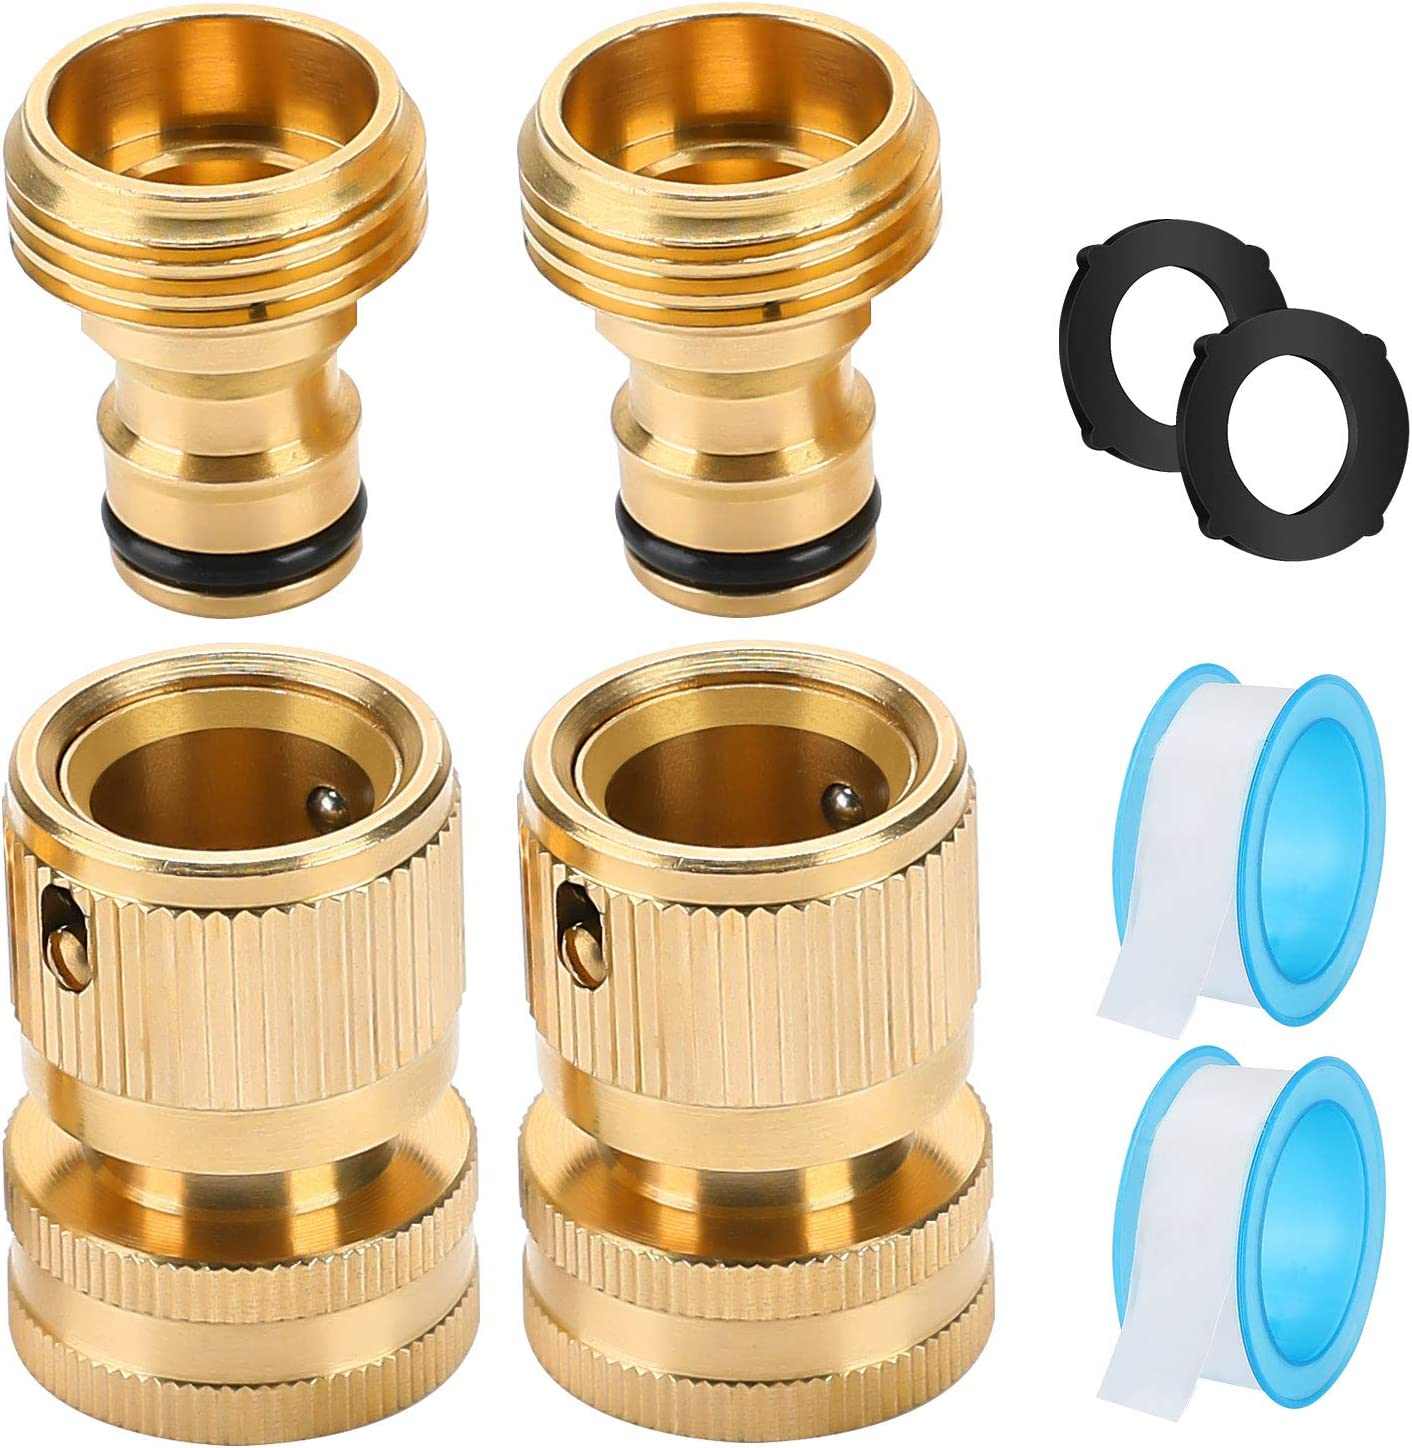 Garden Hose Quick Connect Premium- Hose Fittings With Quick Connect Faucet Adapter, Water Hose Adapter Connector 3/4 Inch Male And Female Disconnect Set Solid Brass Leakproof Easy Connect 2Sets Dcosok